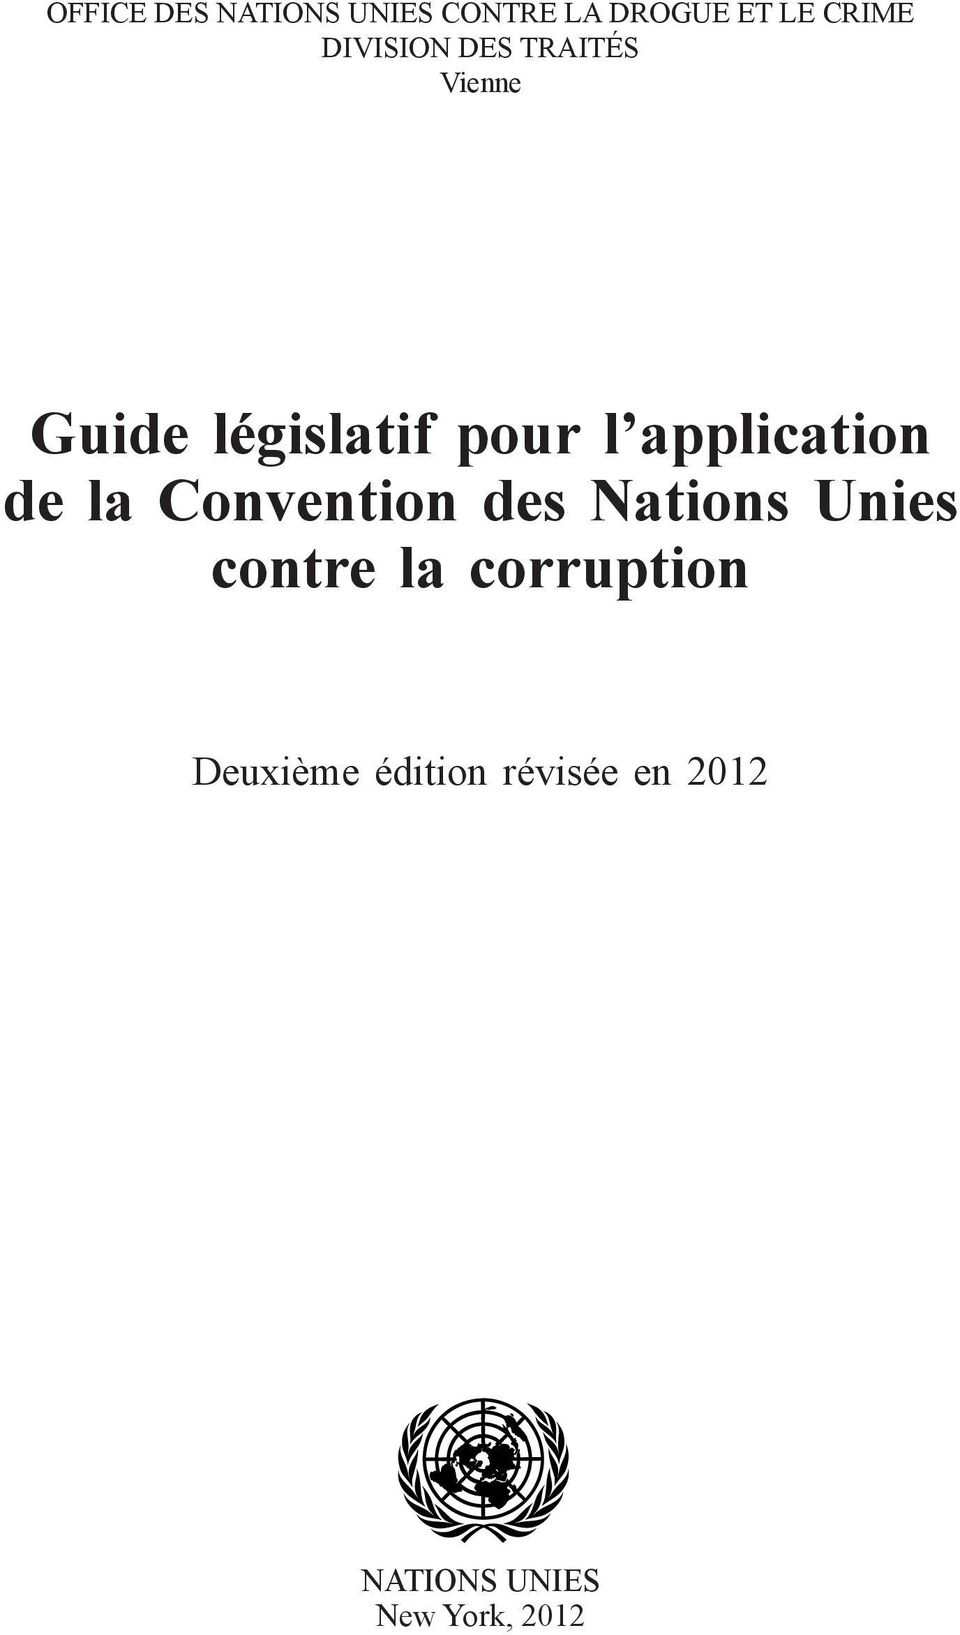 application de la Convention des Nations Unies contre la